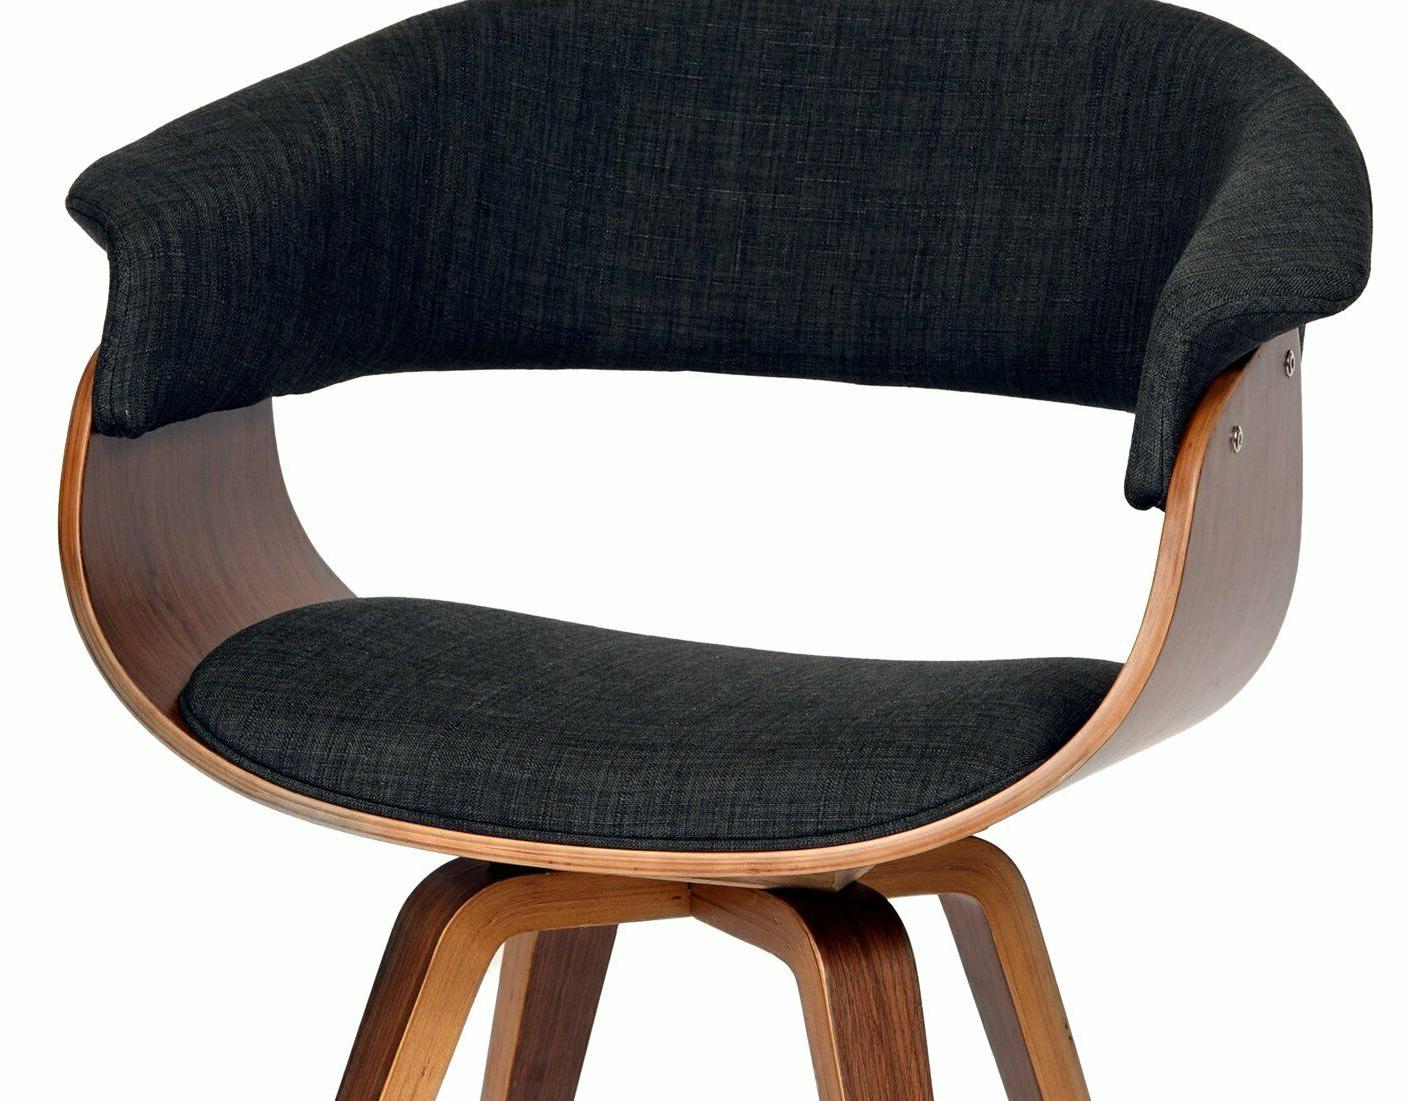 Armen Living Summer Chair in Charcoal and Walnut Finish